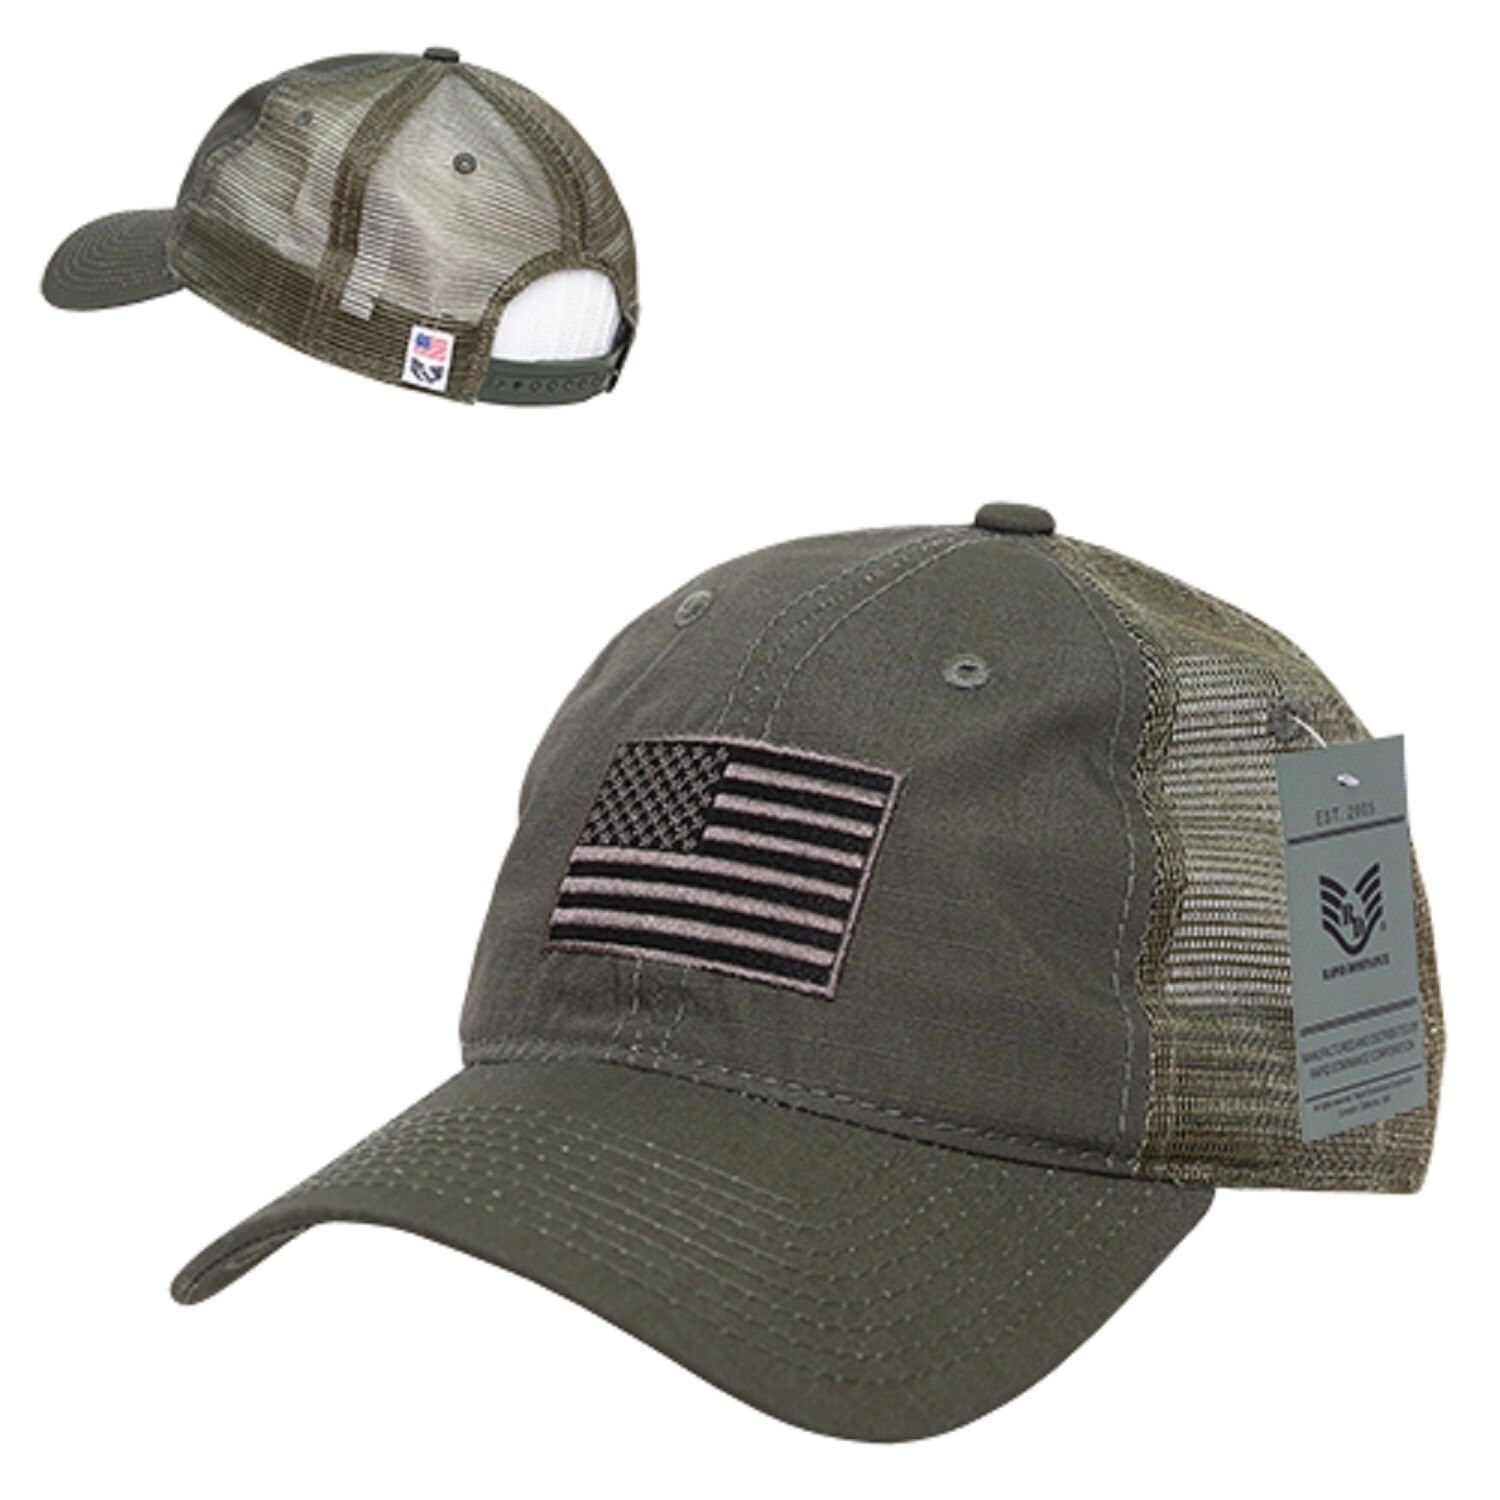 Details about Olive Green USA United States Flag America Ripstop Mesh  Trucker Baseball Hat Cap 3a02292389f